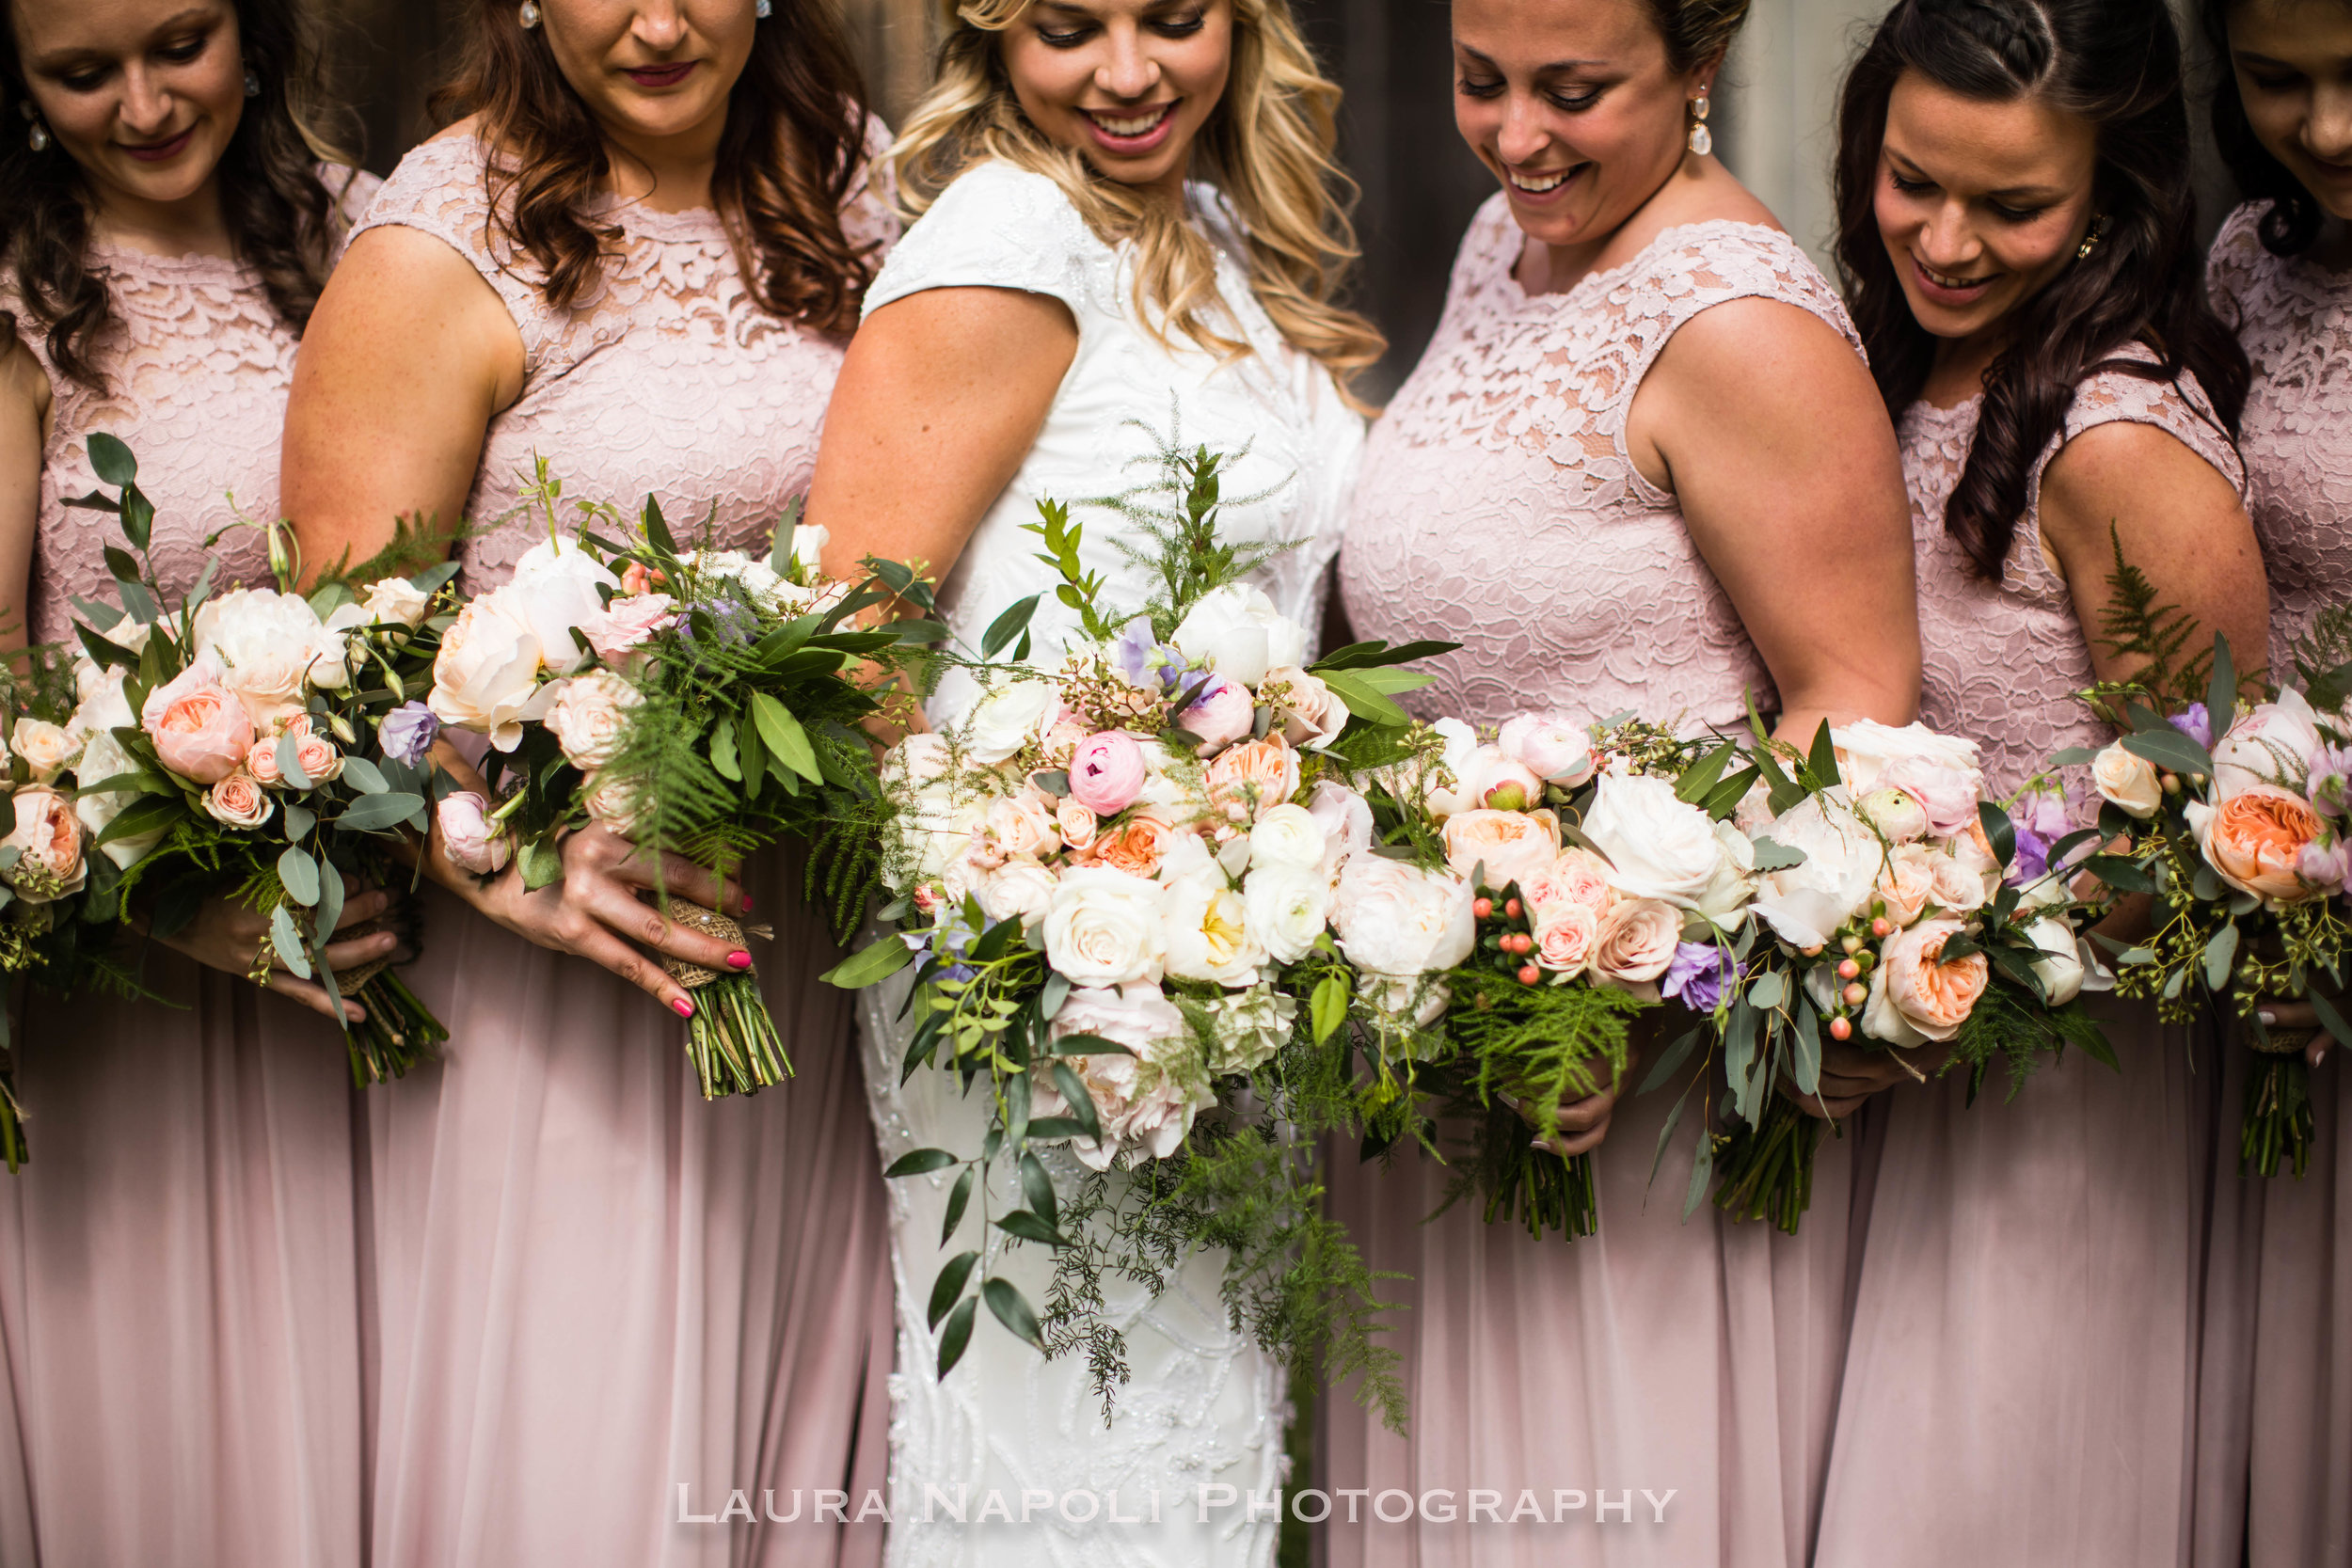 abbieholmesestateweddingcapemaynjweddingphotographer-27.jpg